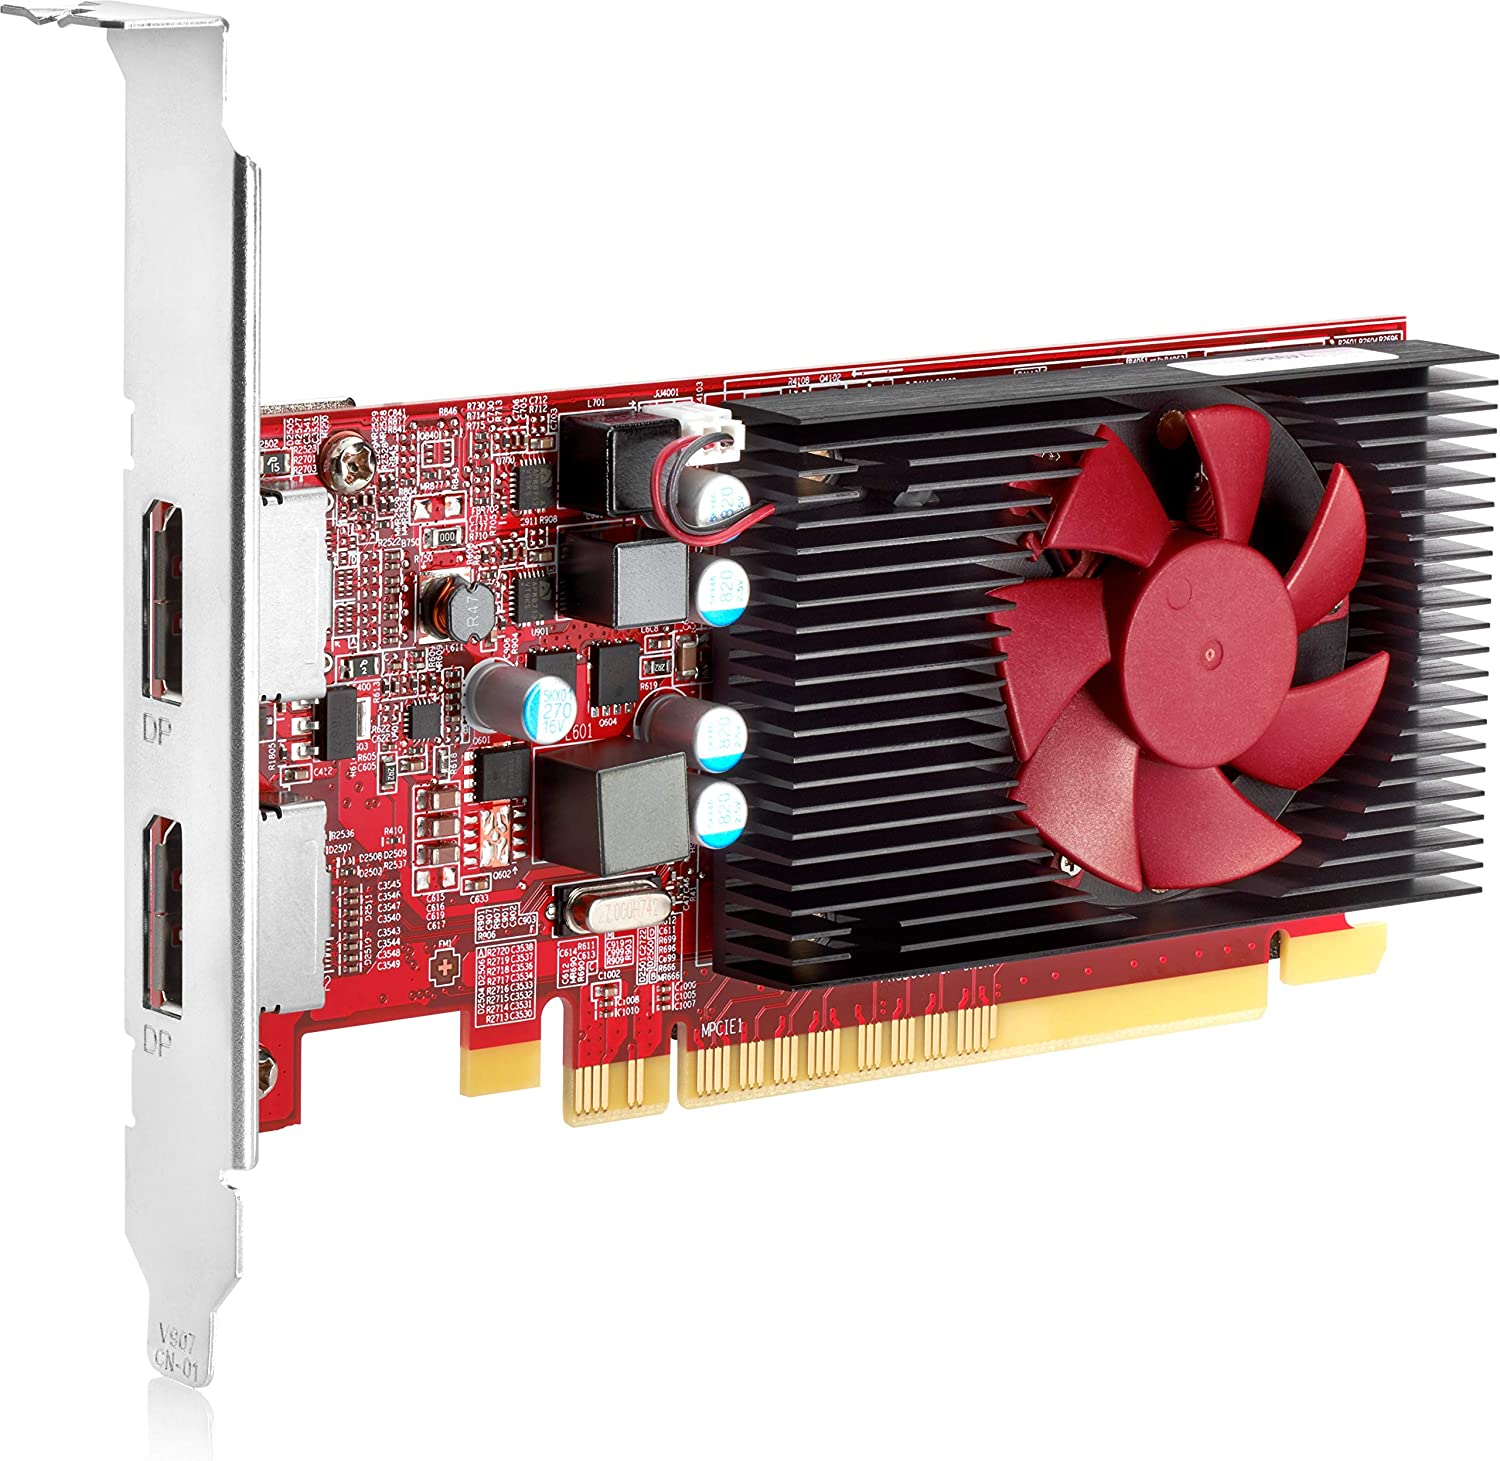 HP 3MQ82AA AMD Radeon R7 430 - Graphics Card - Radeon R7 430-2 GB GDDR5 - PCIe 3.0 x16 Low Profile - DisplayPort - for EliteDesk 800 G4, ProDesk 400